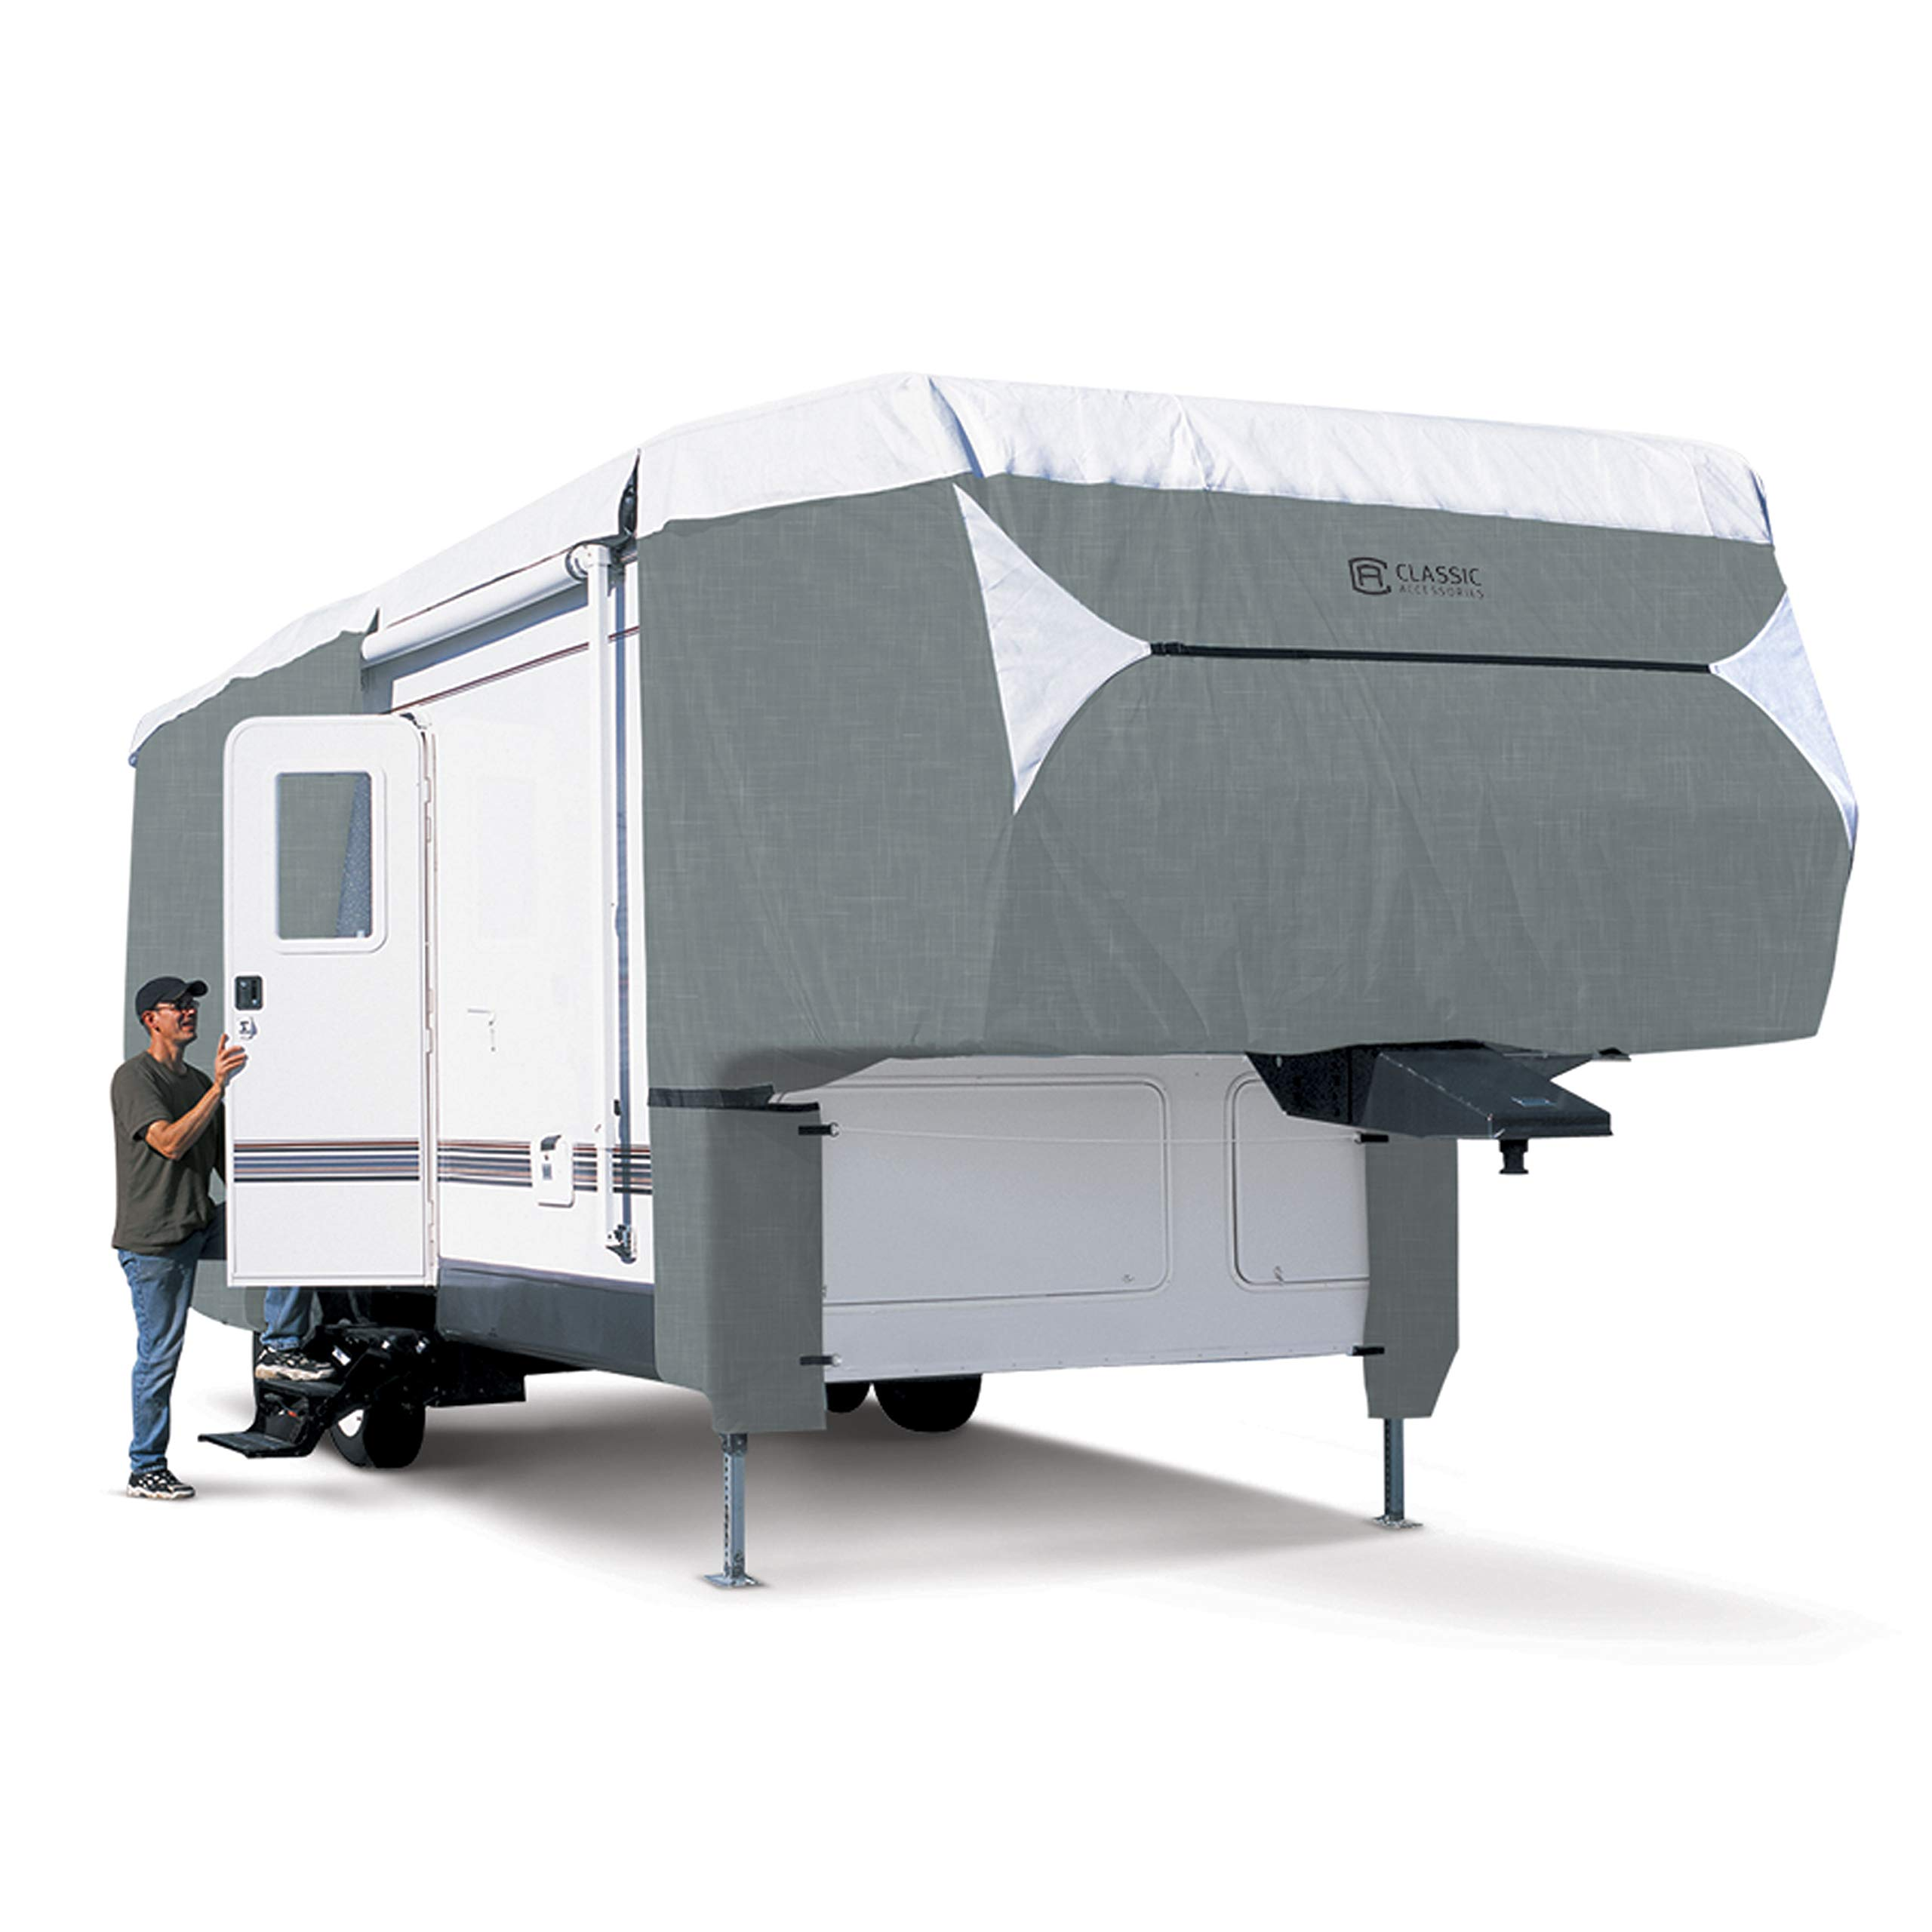 Classic Accessories OverDrive PolyPro 3 Deluxe Cover for 41'1'' to 44' 5th Wheel Trailers